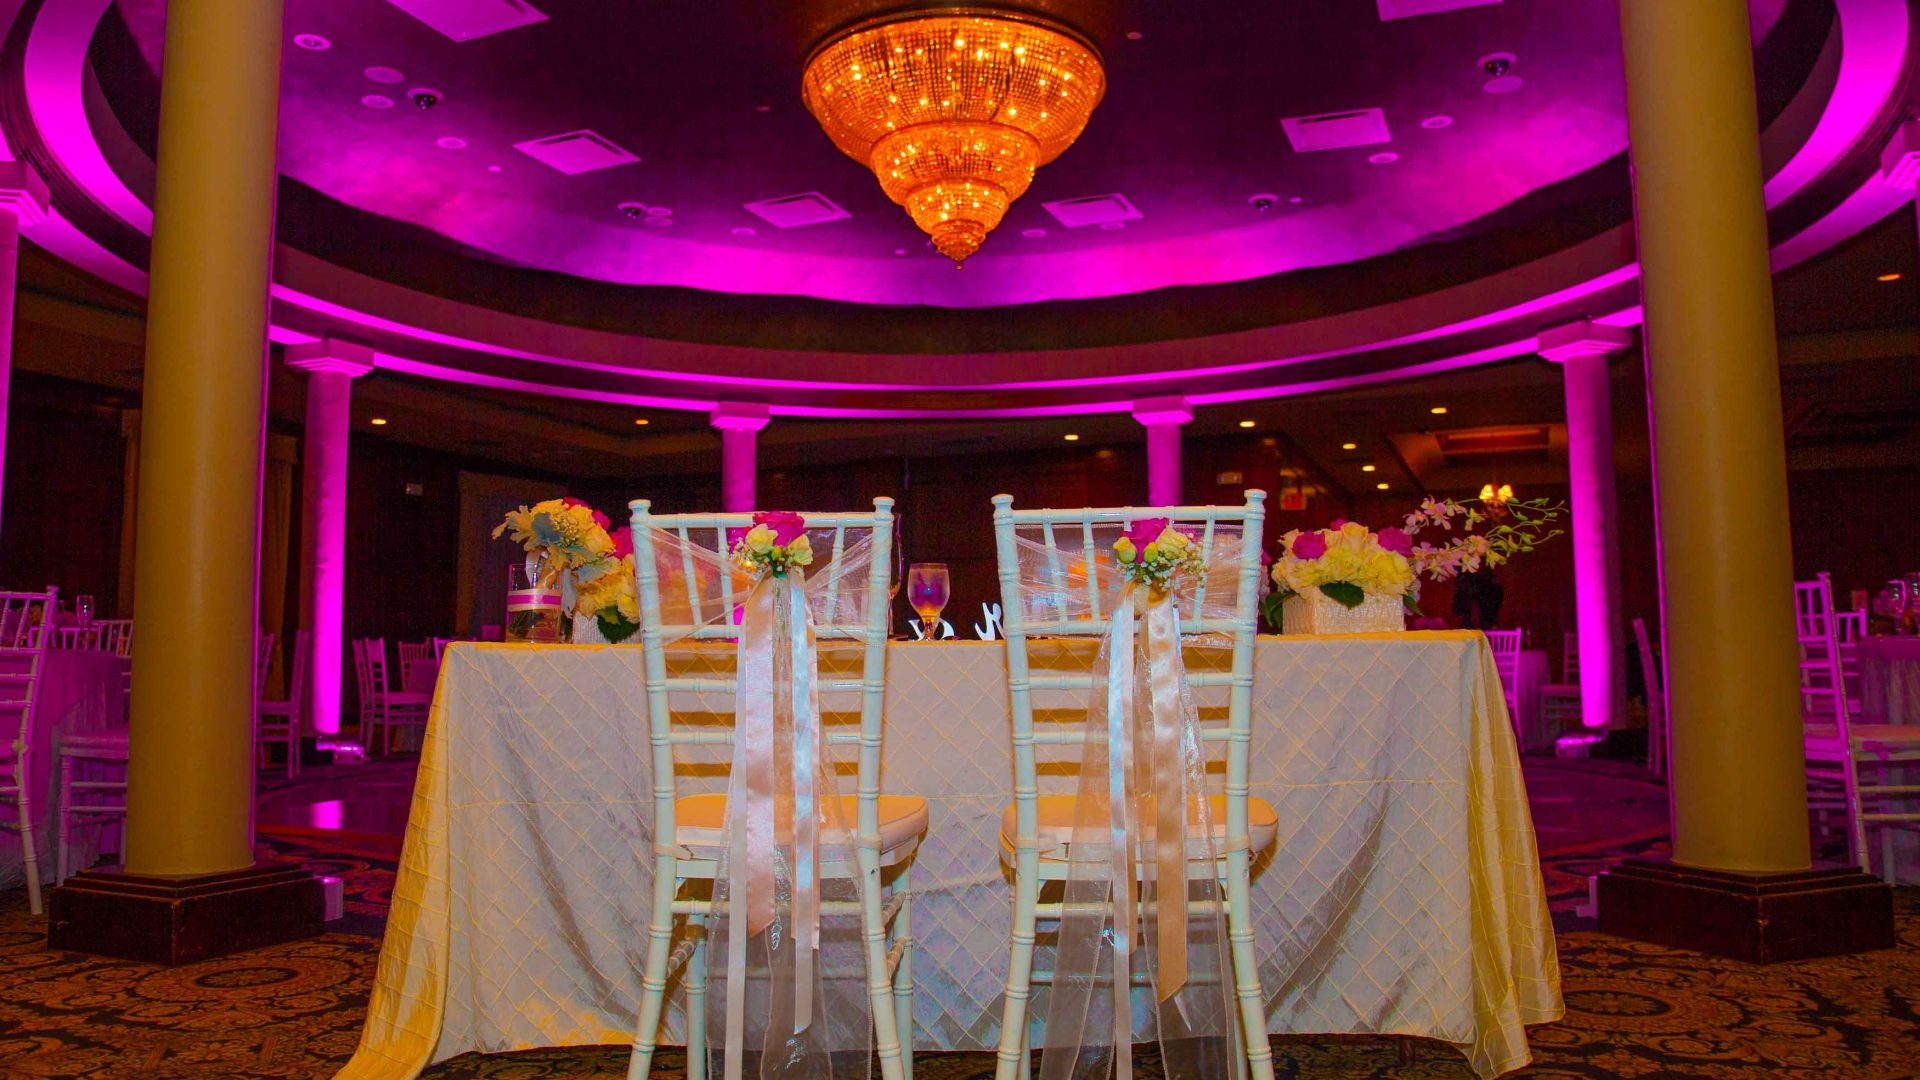 Meliá Coco Beach Resort. Rio Grande. Puerto Rico. The hall is beautiful. Waiting for the newly-wed couple and the guests.